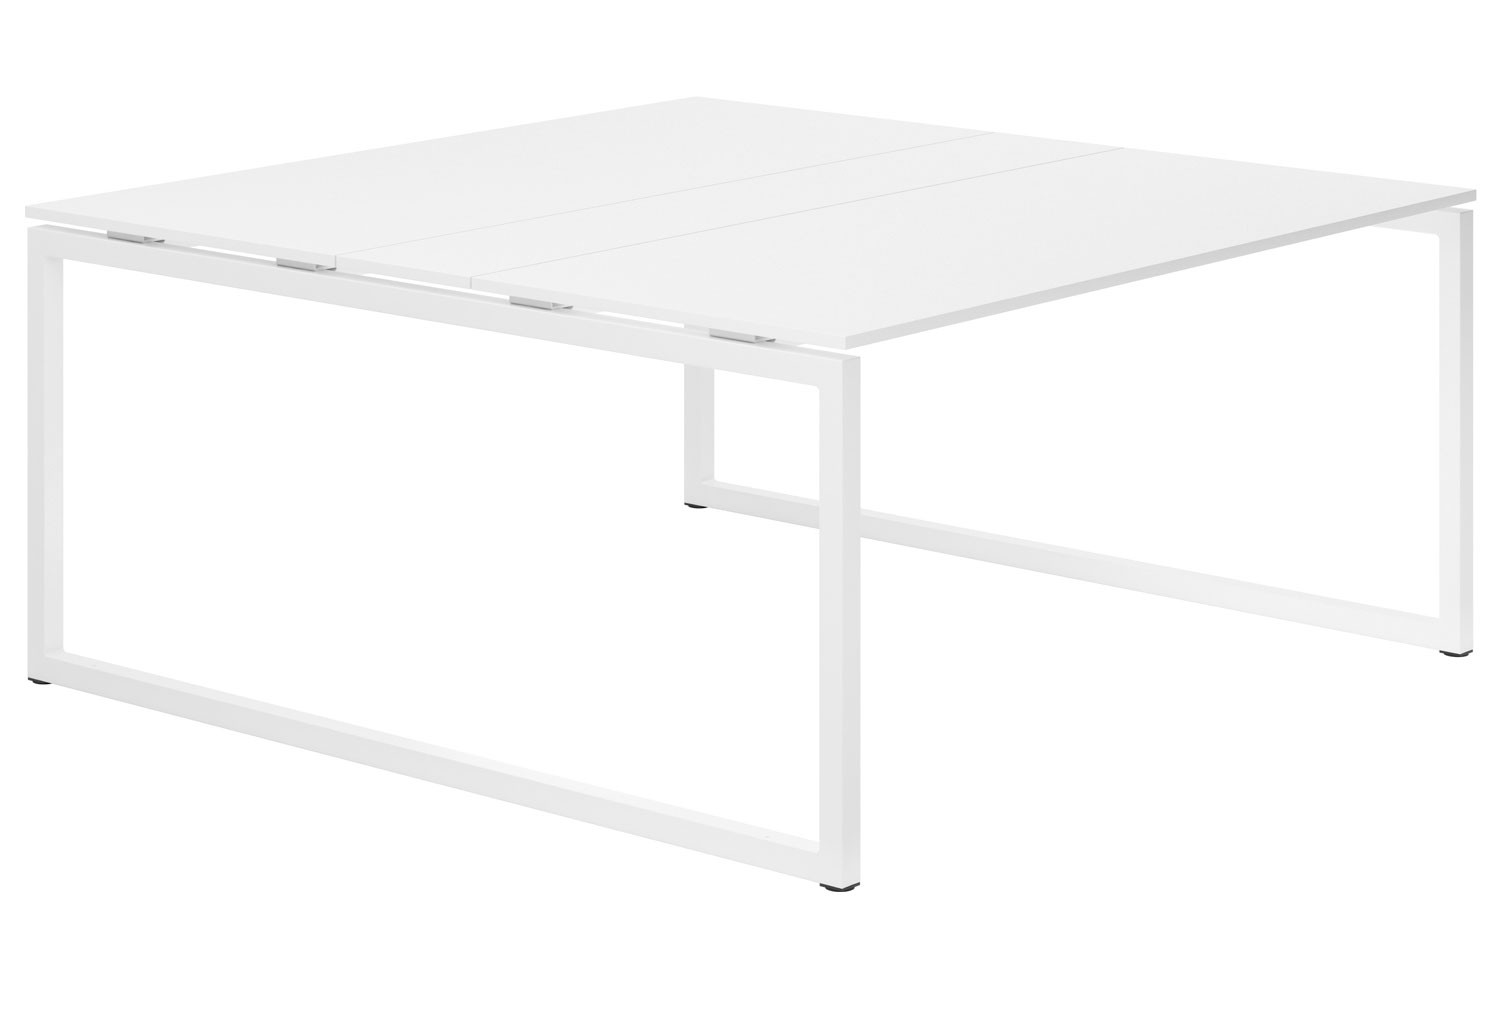 Campos Hooped Leg 6-8 Person Meeting Table (White)